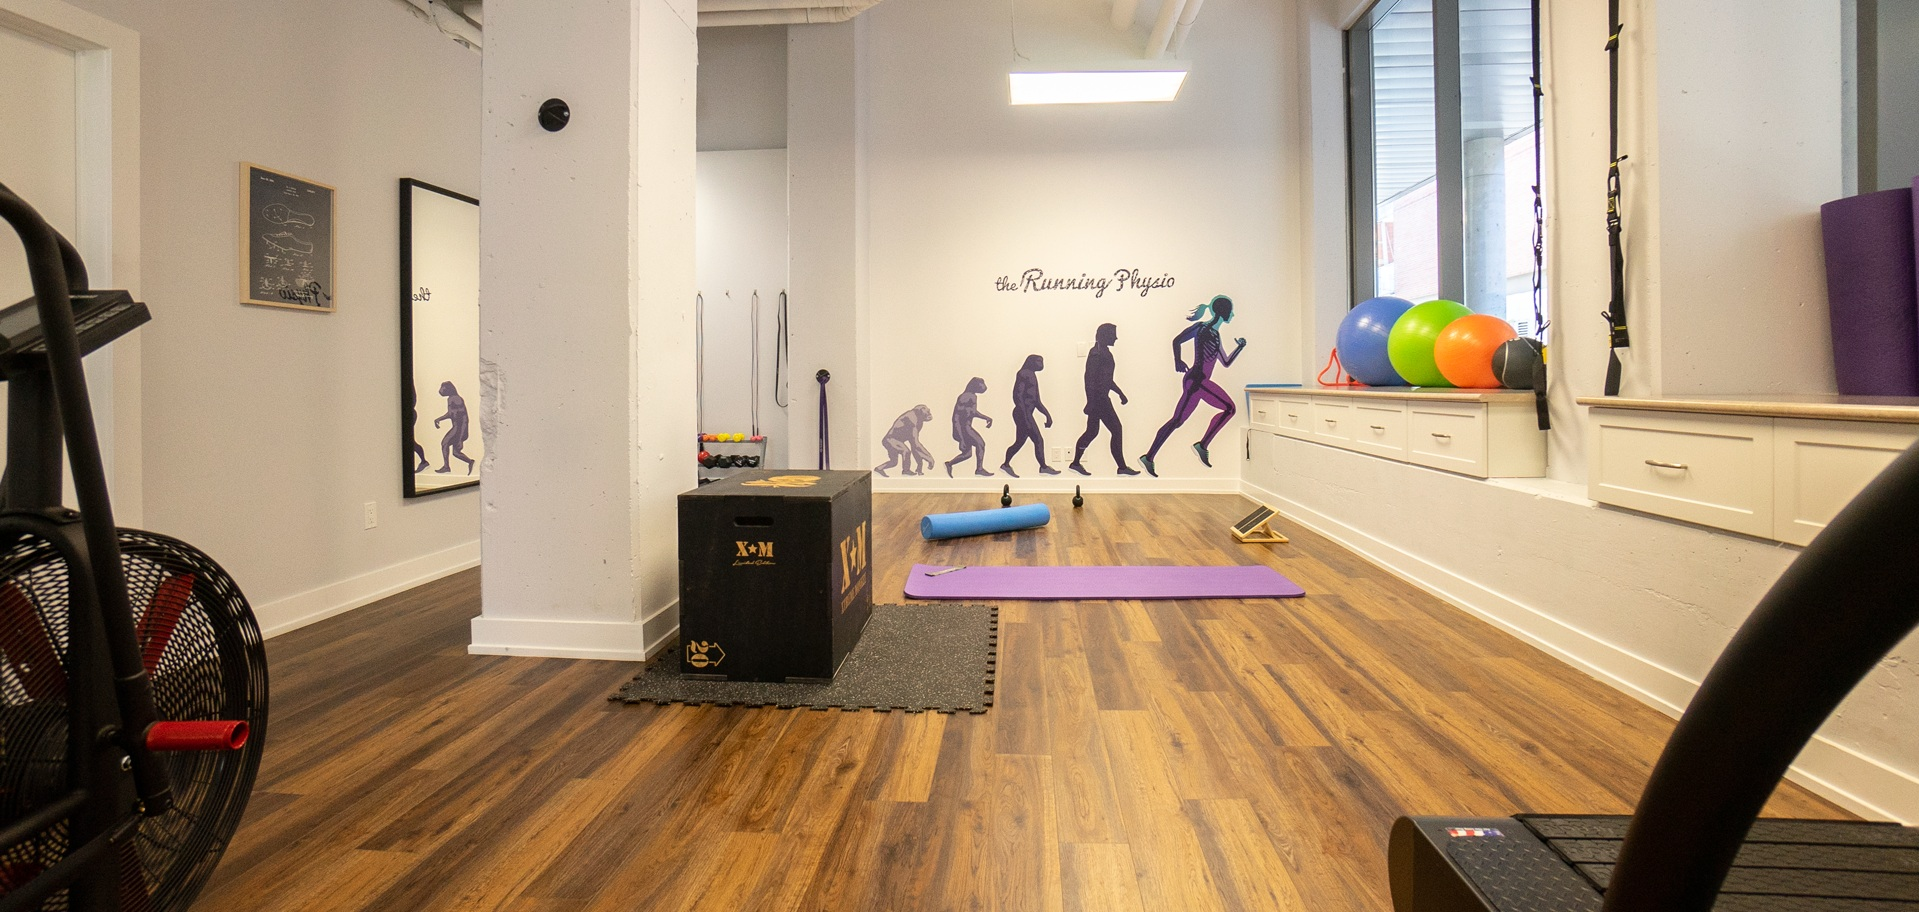 Gym space and treadmill